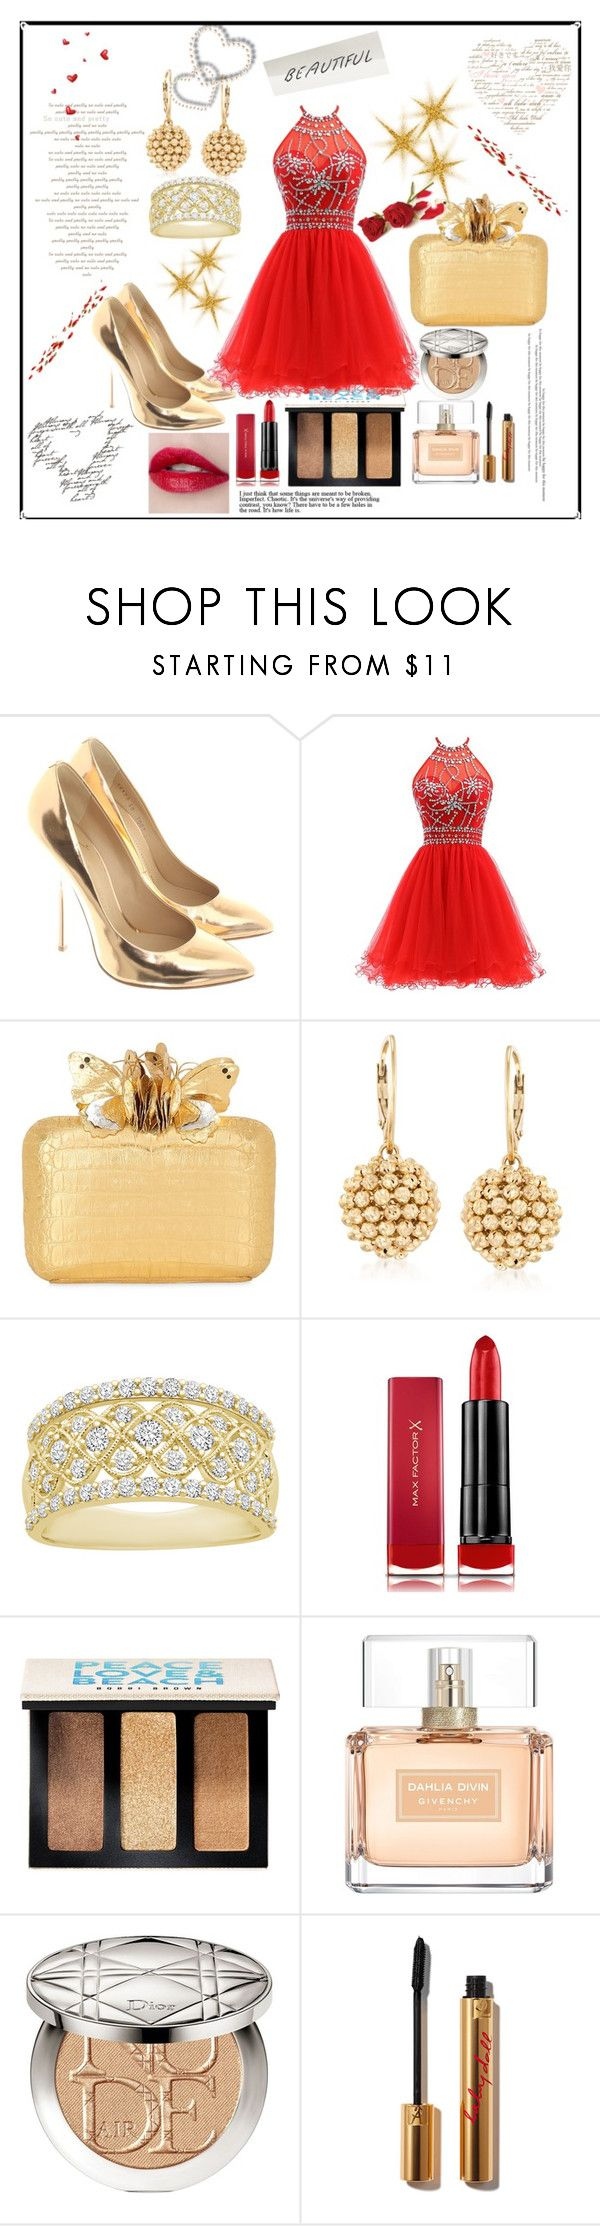 """Women set 8"" by emypoyvore ❤ liked on Polyvore featuring Giuseppe Zanotti, Nancy Gonzalez, Ross-Simons, Max Factor, Bobbi Brown Cosmetics, Givenchy and Christian Dior"